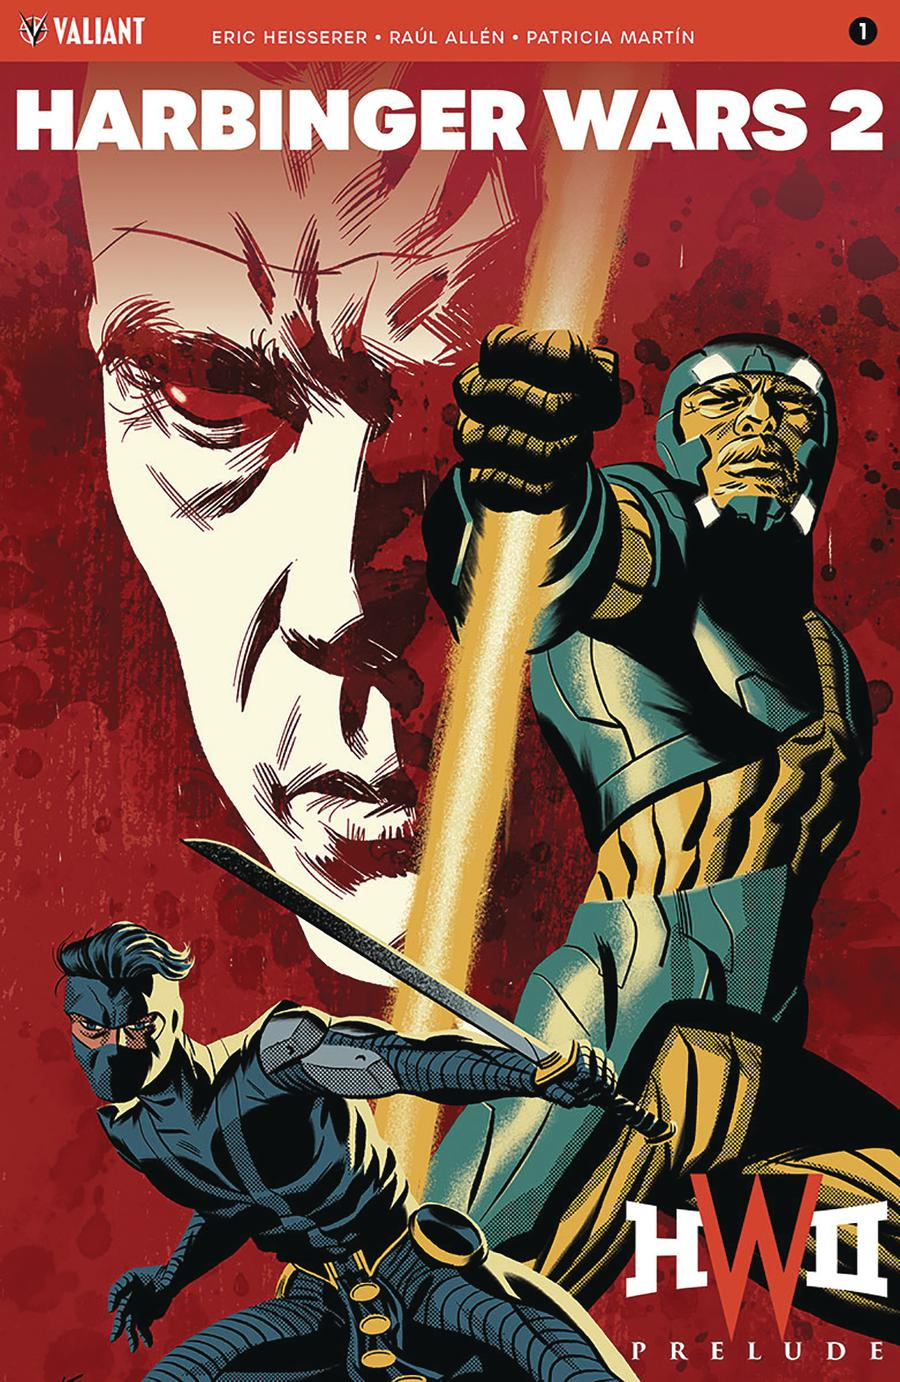 Harbinger Wars 2 Prelude #1 Cover B Variant Michael Cho Cover